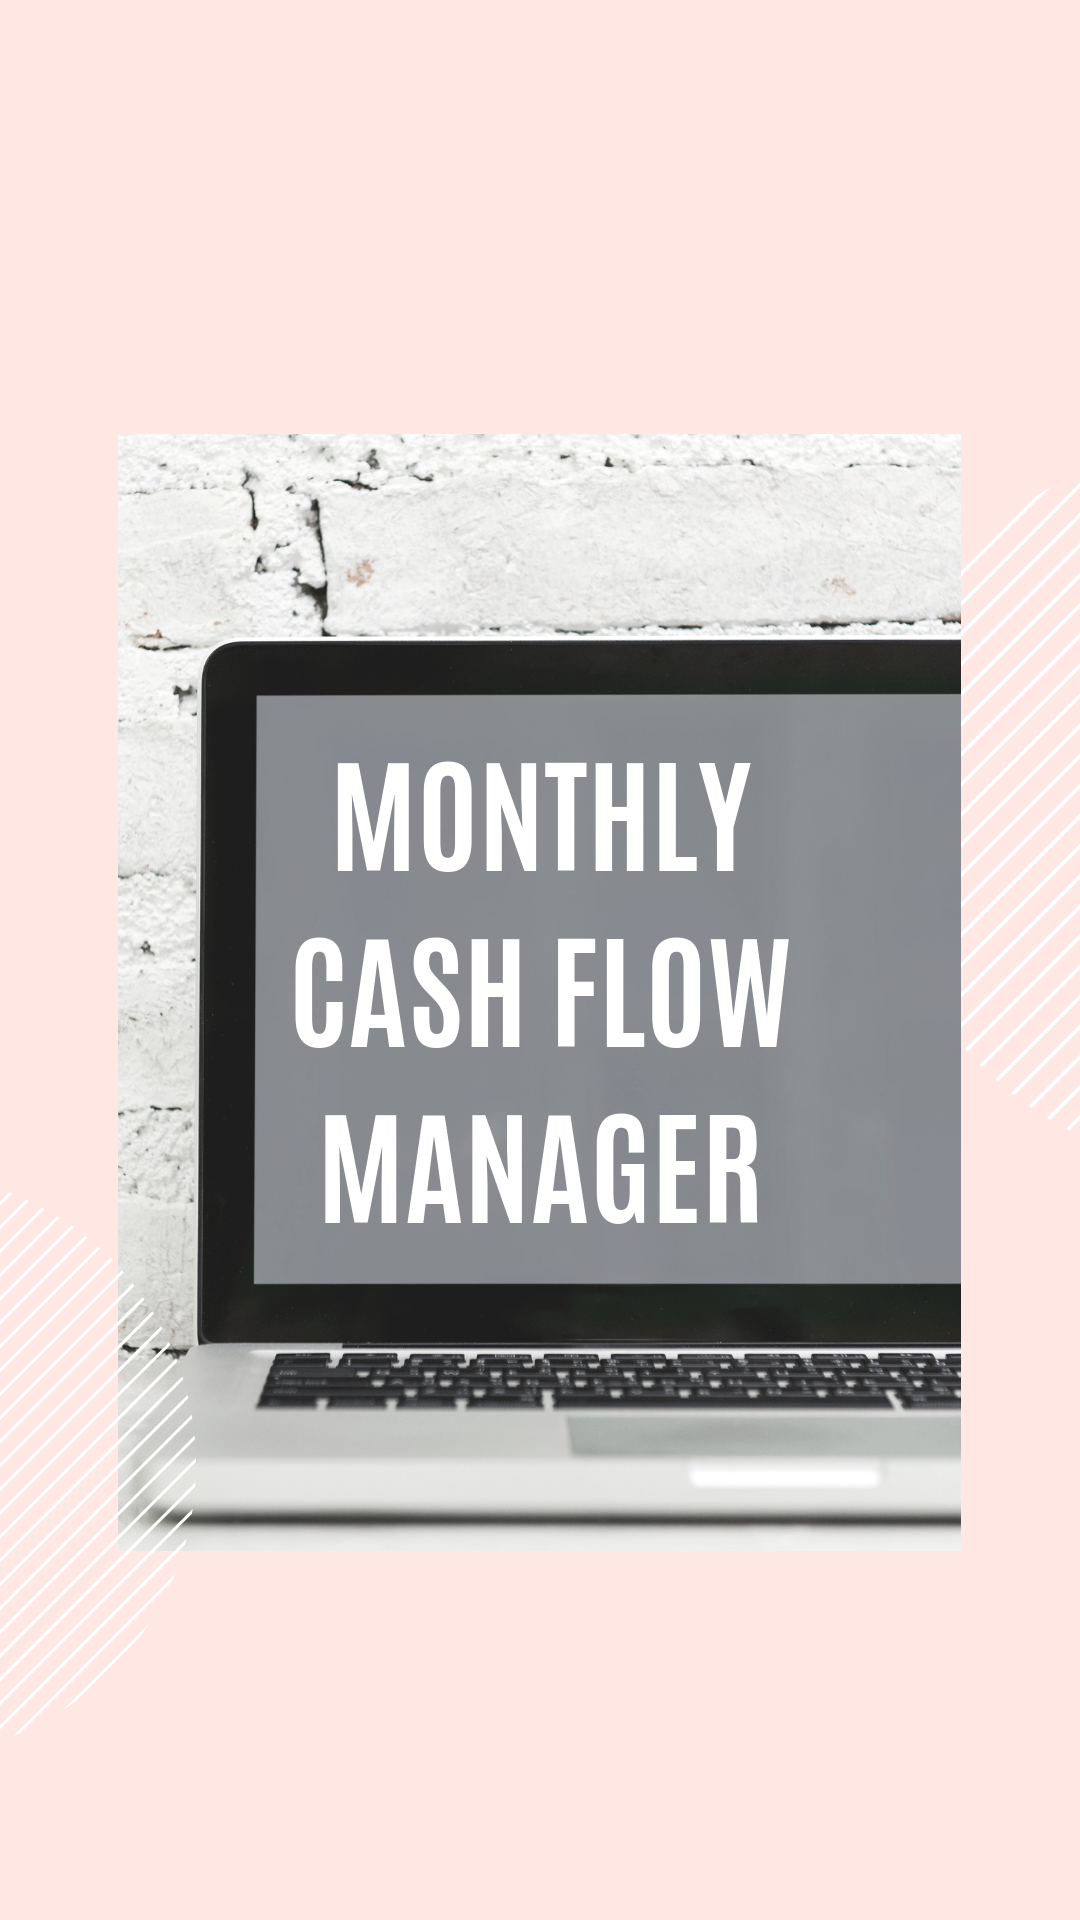 Monthly Cash Flow Manager